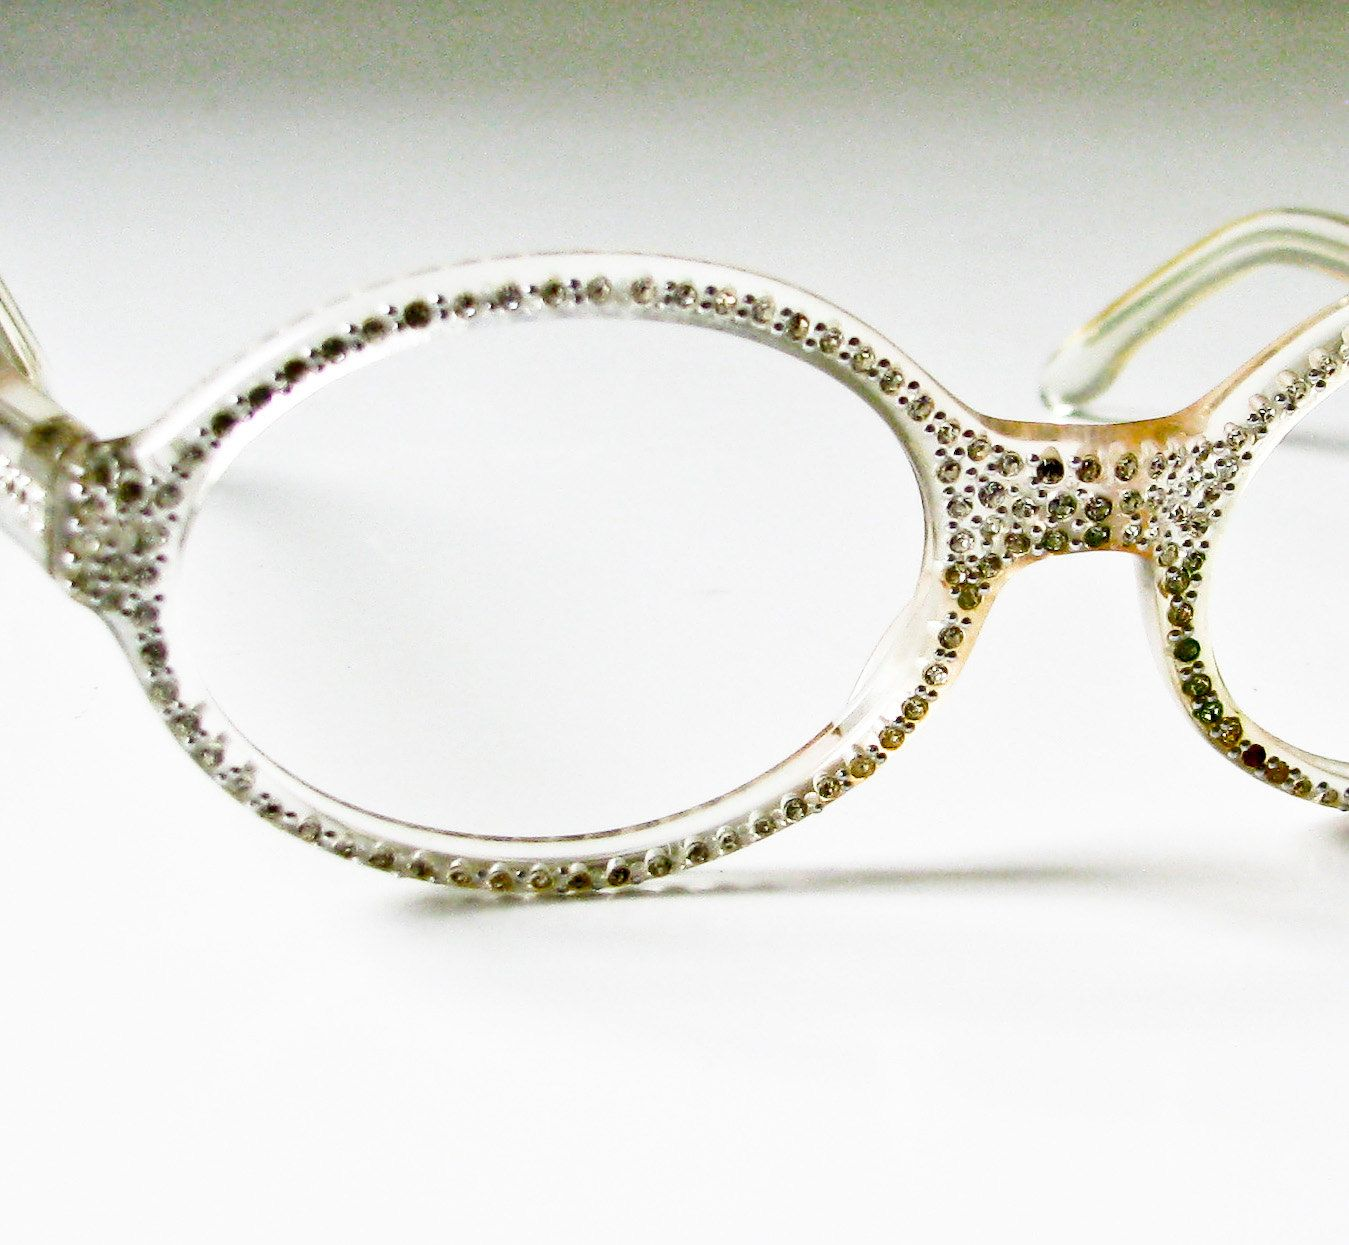 1950s clear plastic and rhinestone eyeglass frames ready for prescription or dark glass mid century modern french